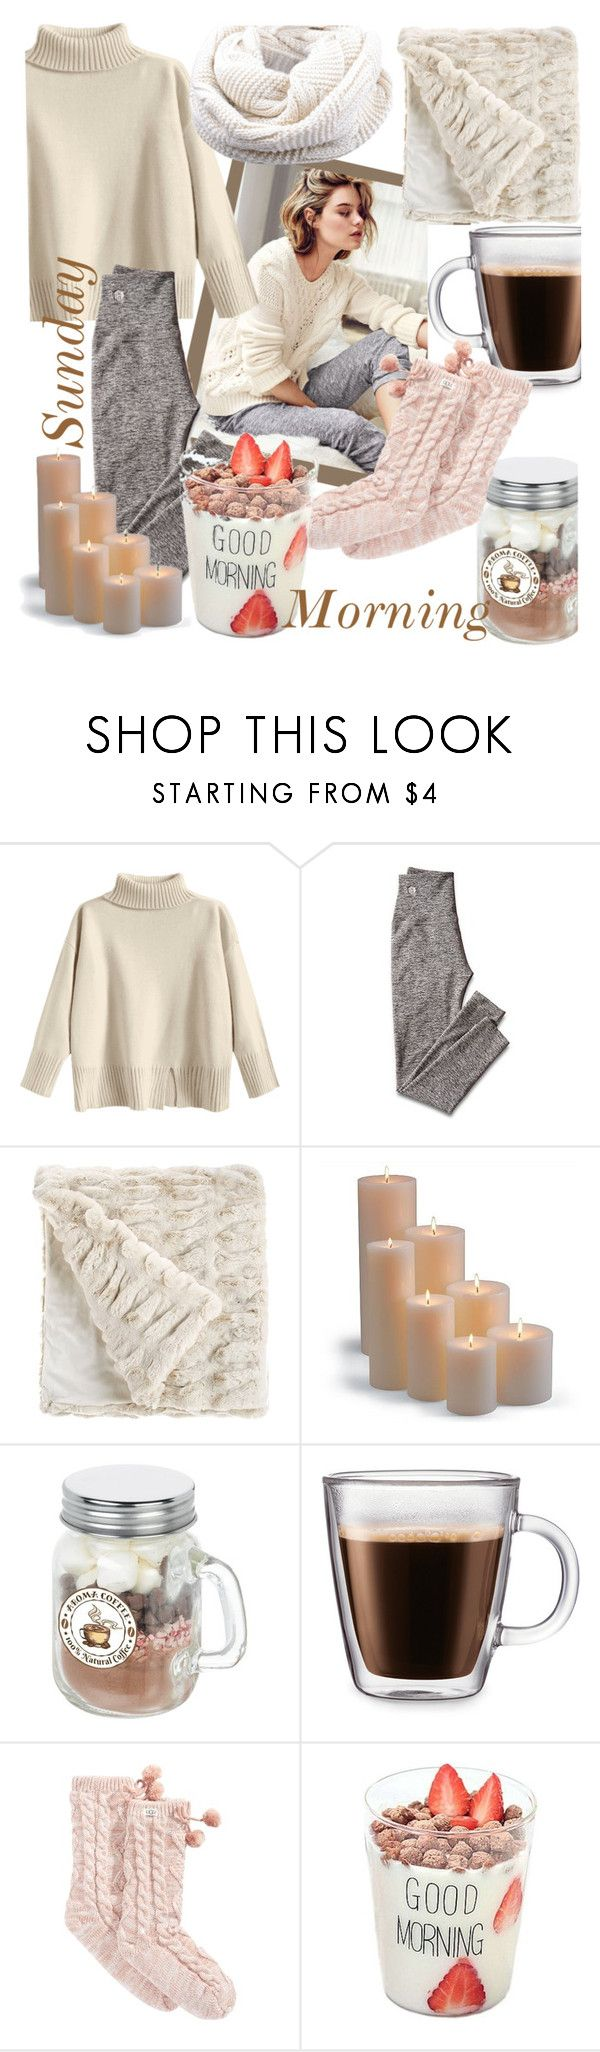 """Rainy Sunday Morning"" by babett-beattie ❤ liked on Polyvore featuring Homewear, Mark & Graham, Fabulous-Furs, Frontgate and UGG"